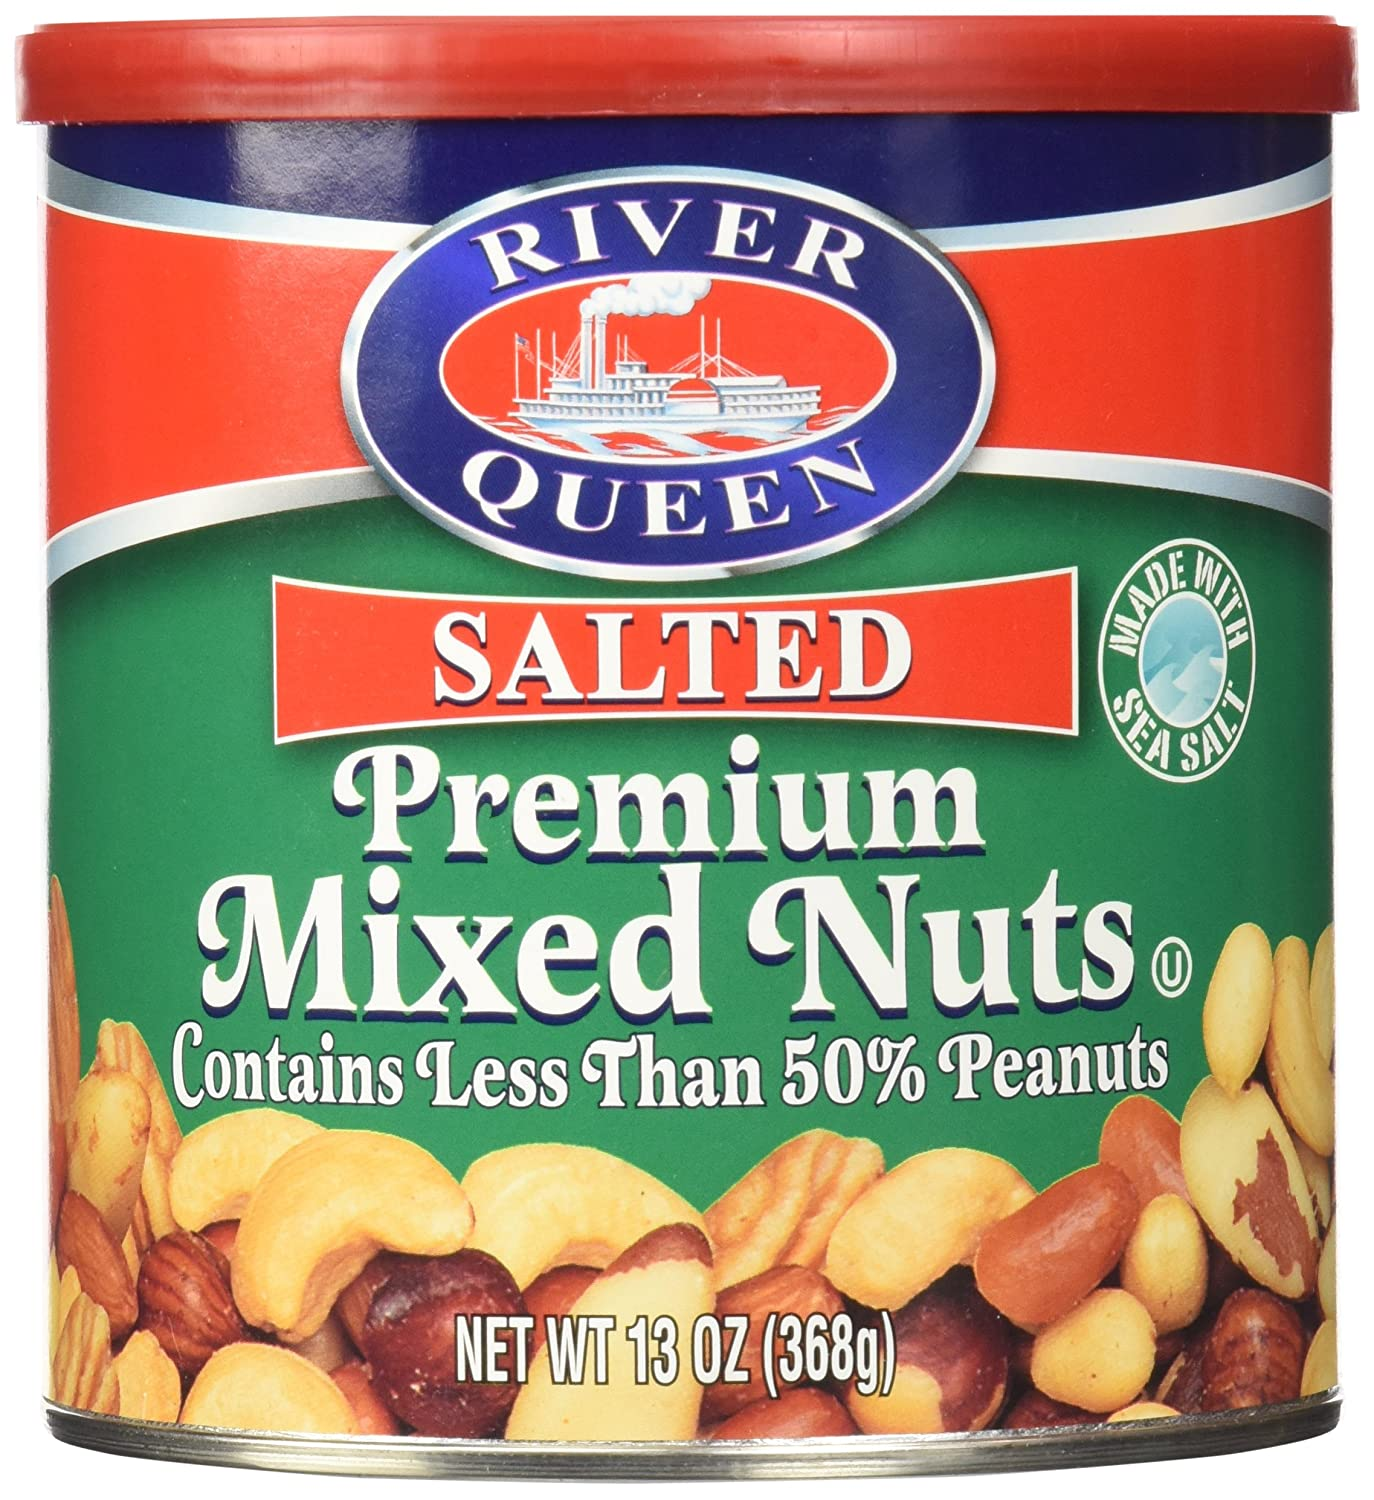 River Queen Quantity limited Premium Salted [Alternative dealer] Mixed Nuts Ounce. 13